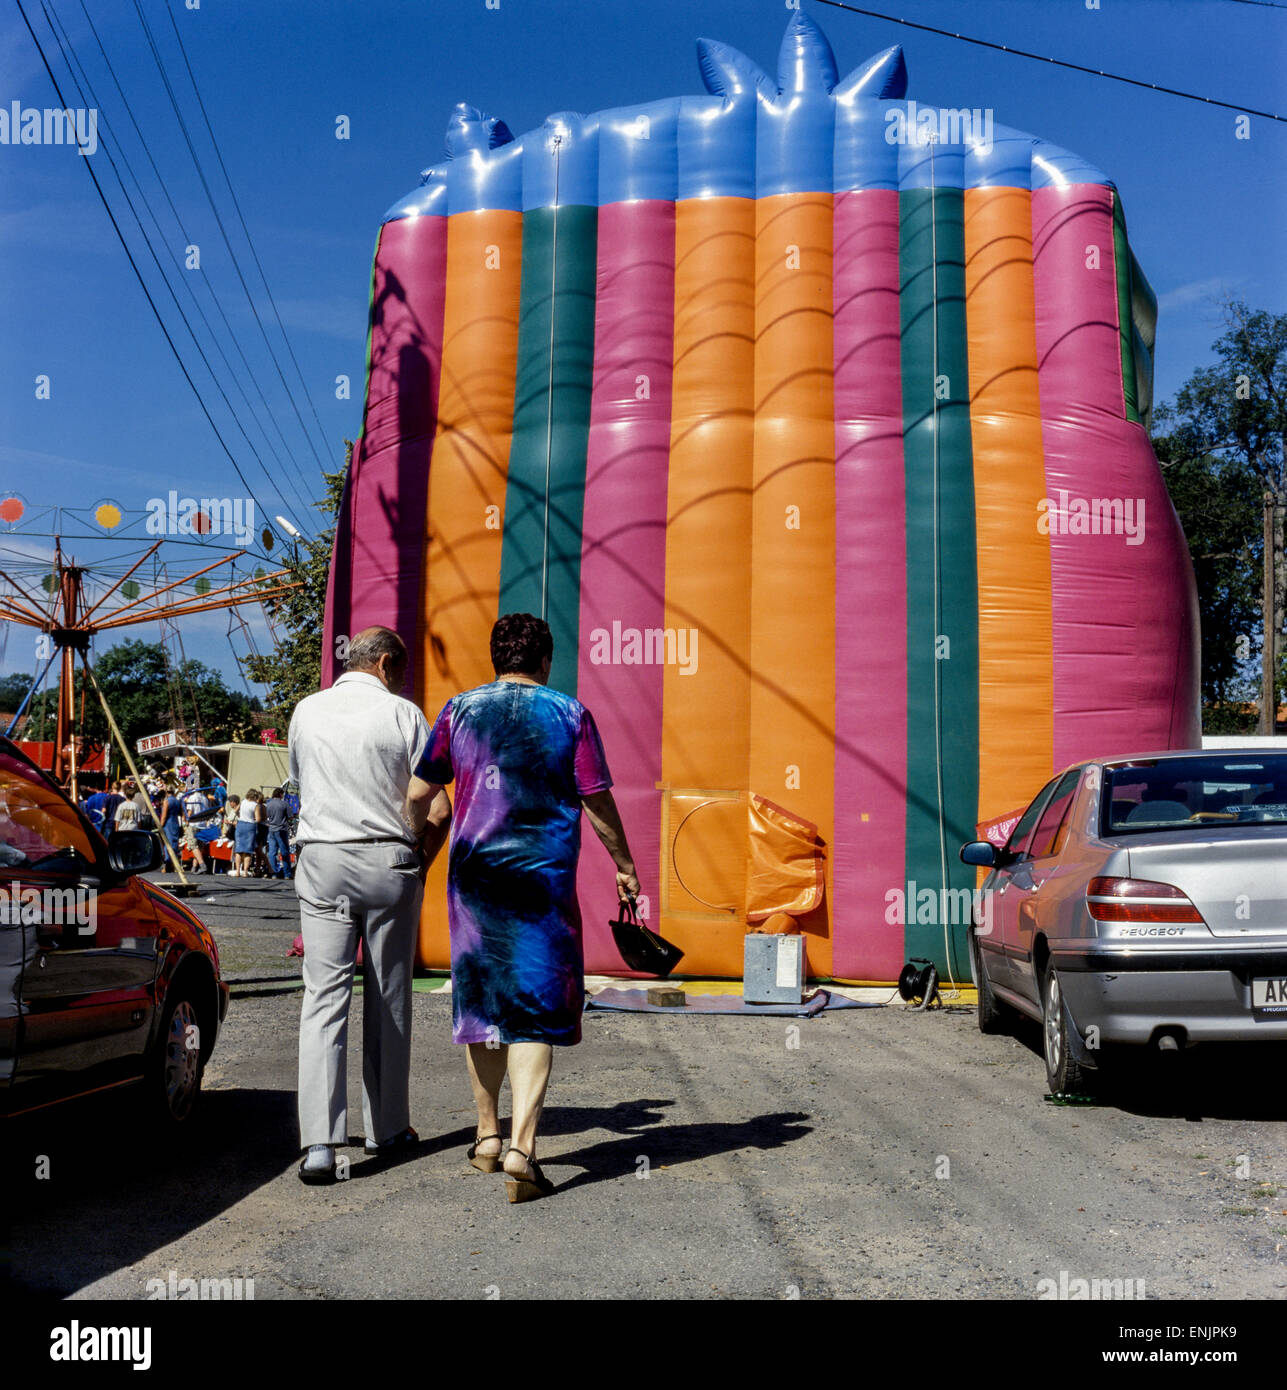 rural fair, couple, mimicry, inflatable bouncy castle couple pair - Stock Image